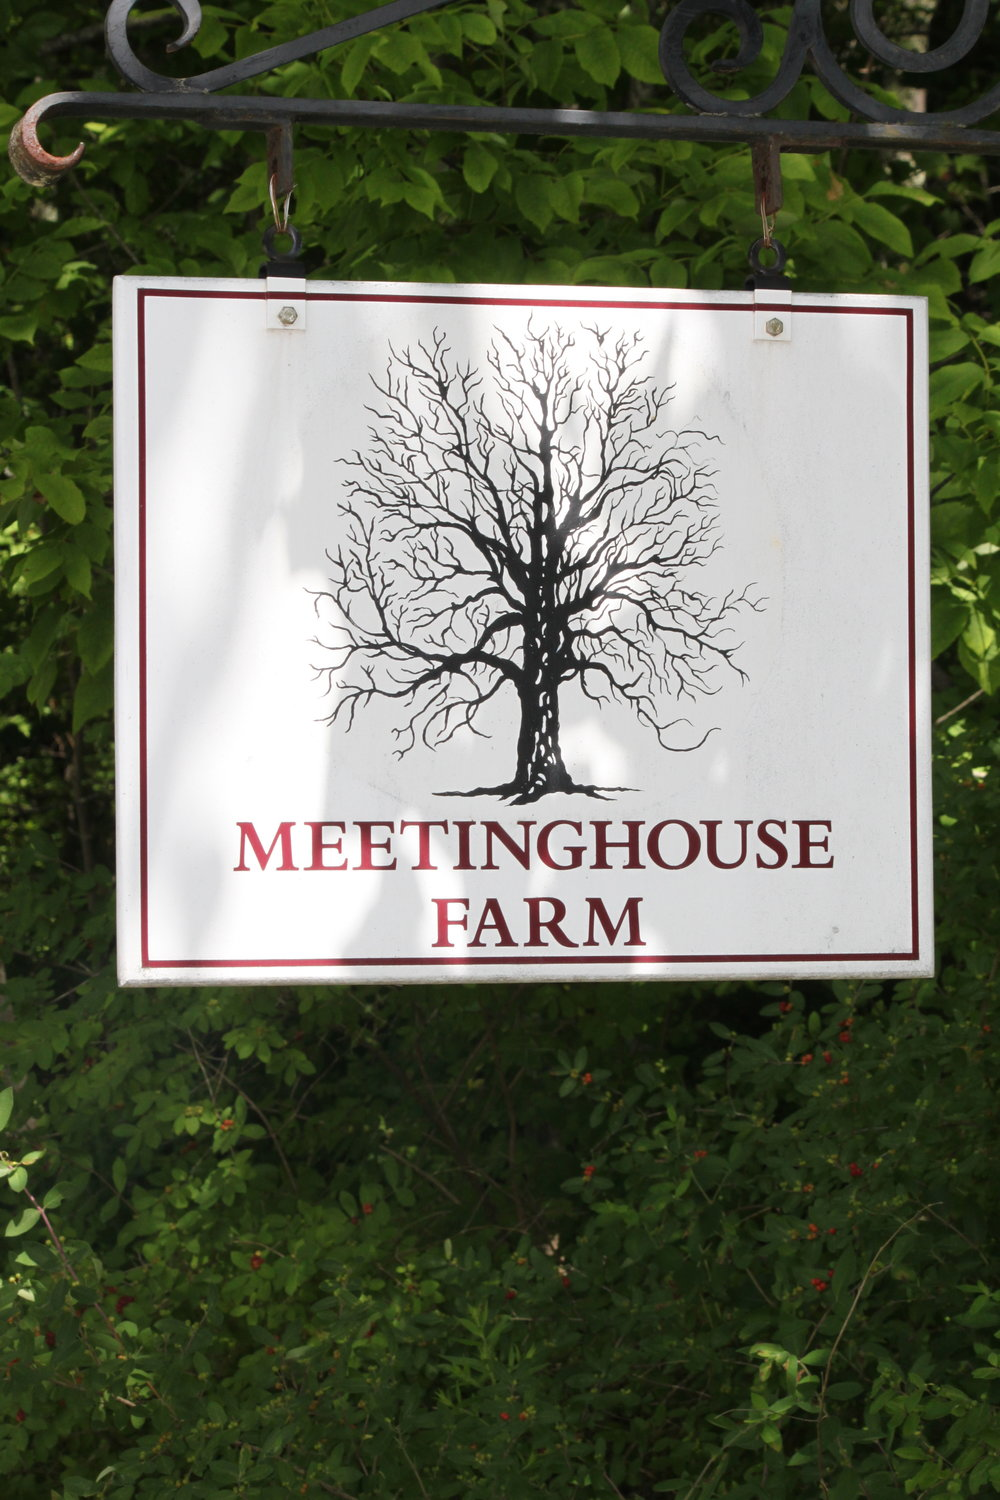 Meetinghouse Farm (Penny Asherman) 2.jpg